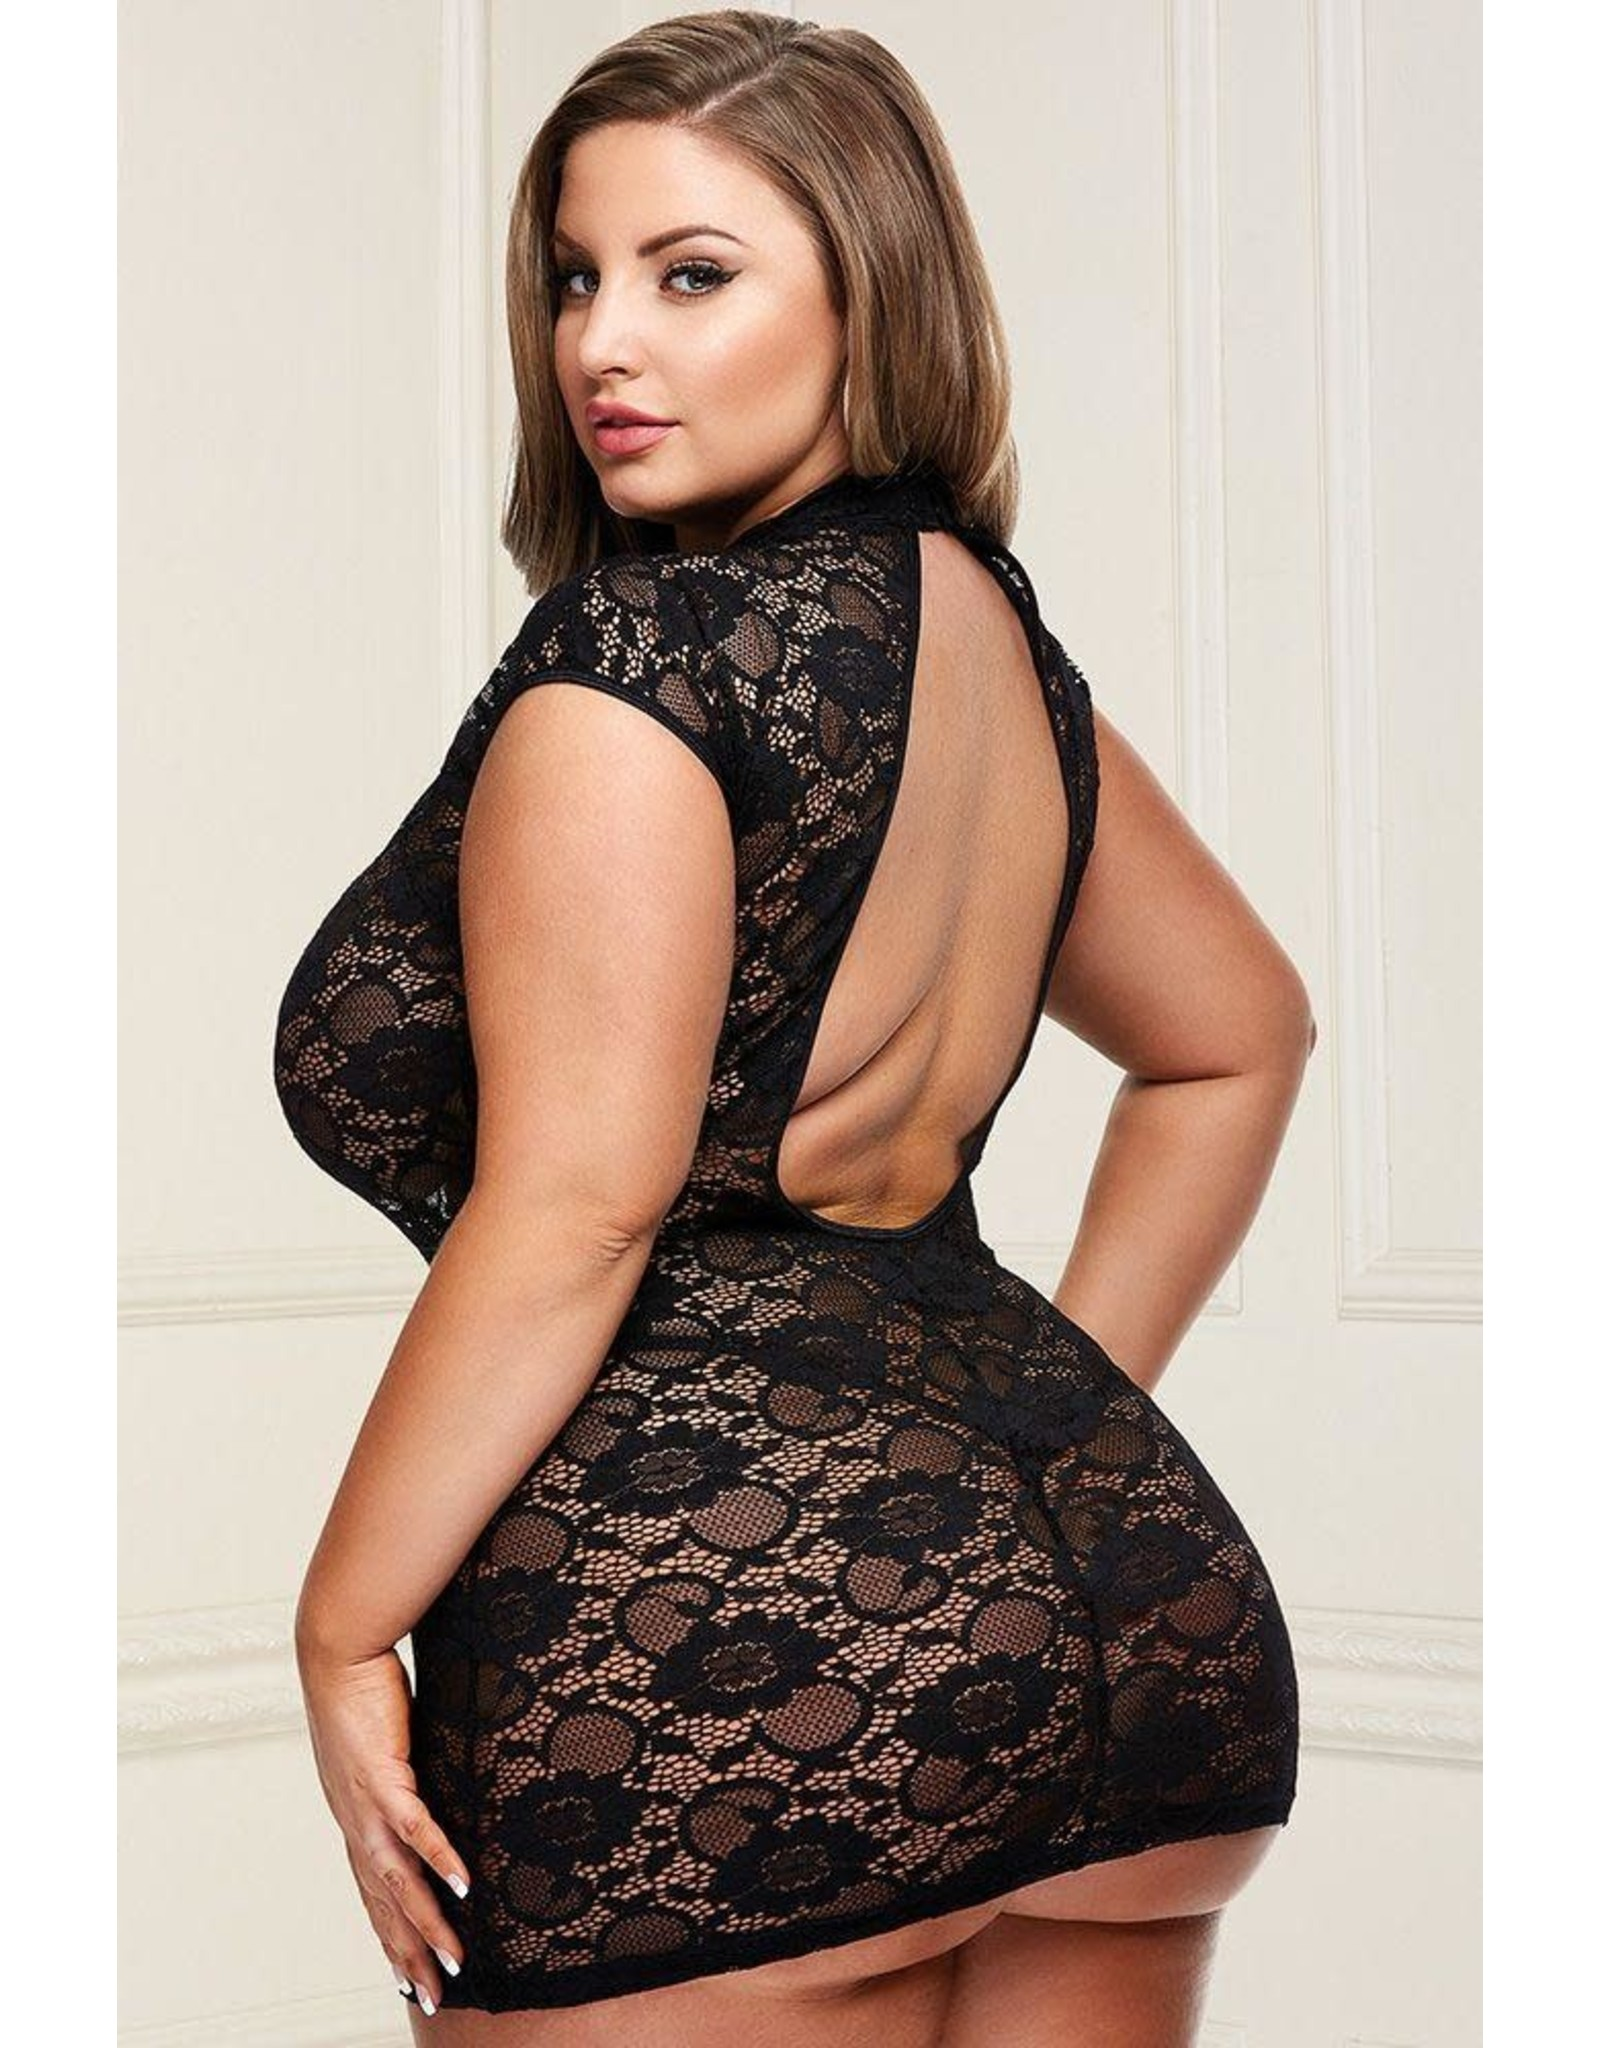 BACI - DRESSED TO THE NINES - BLACK - QUEEN SIZE